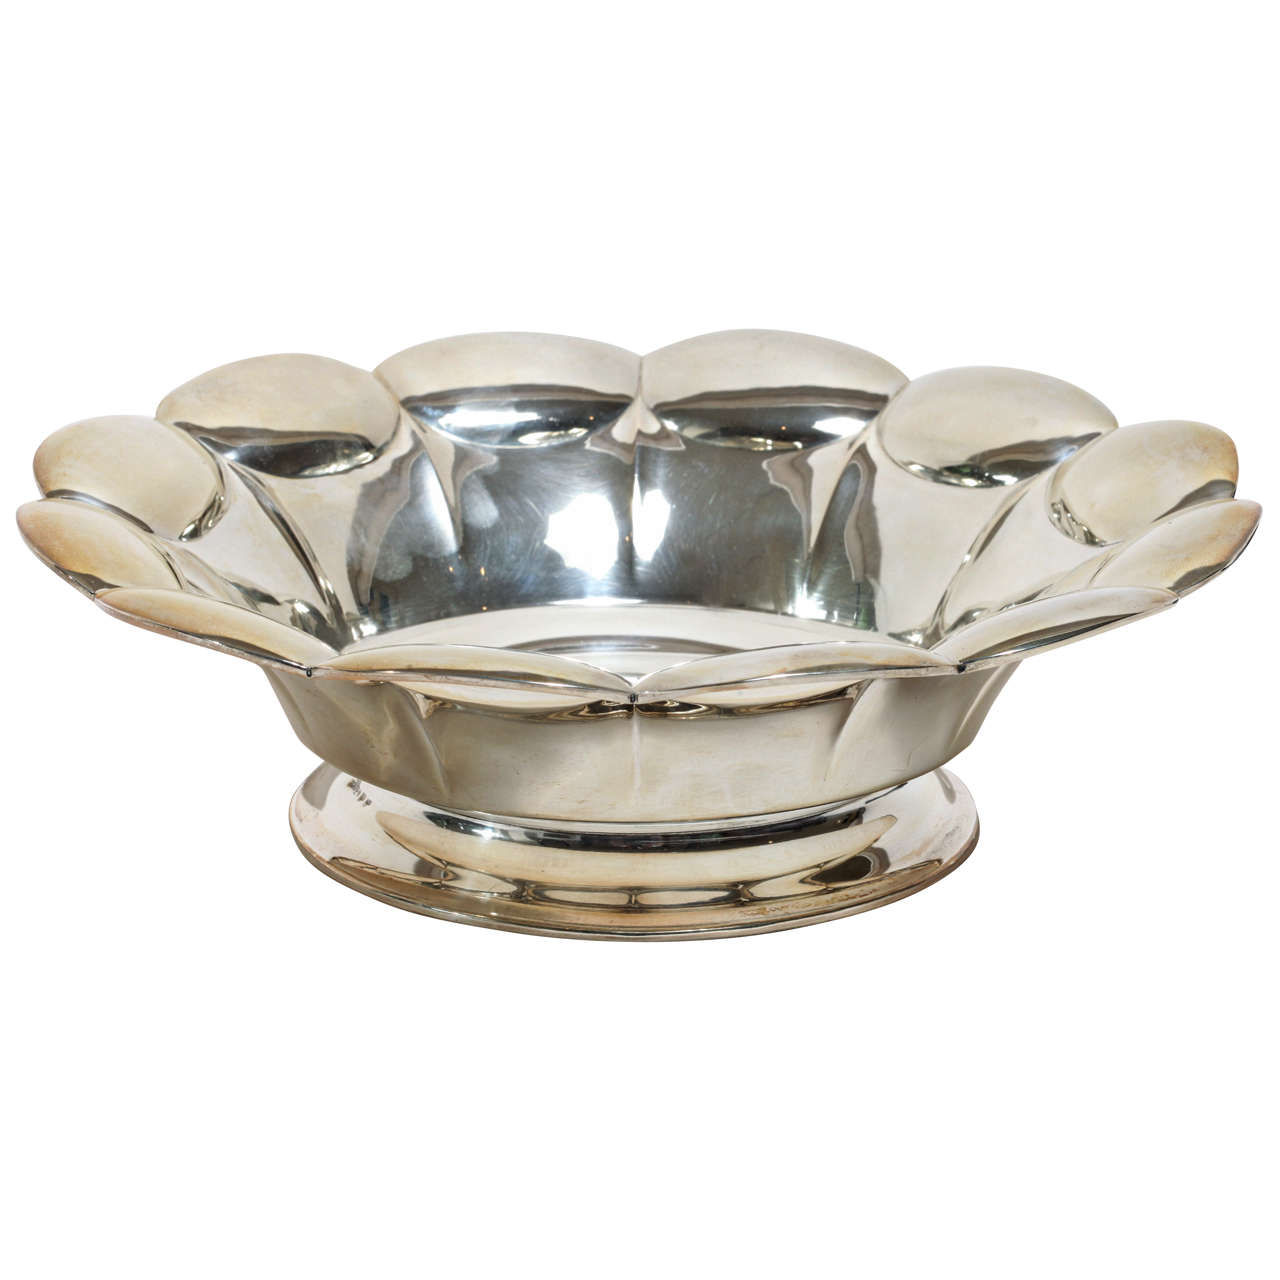 Swedish Art Deco Silver Bowl 1